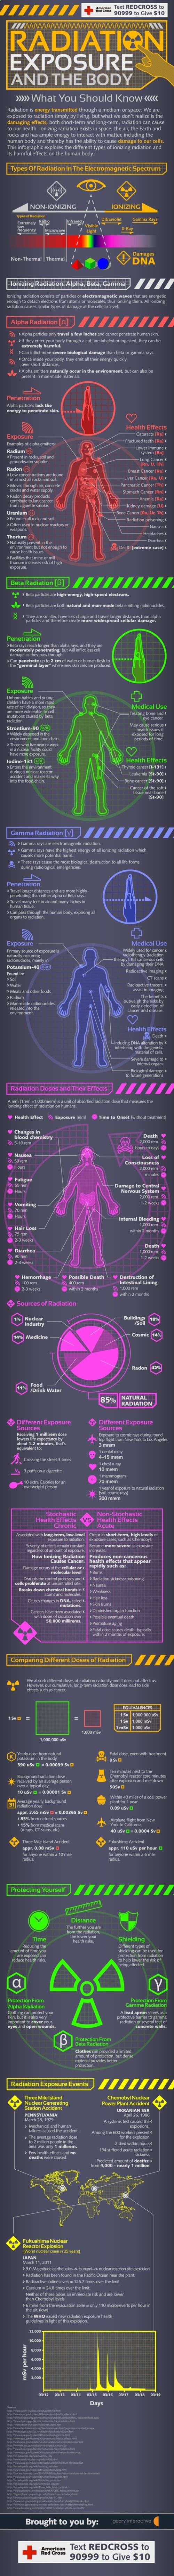 Radiation, Exposure and the Body